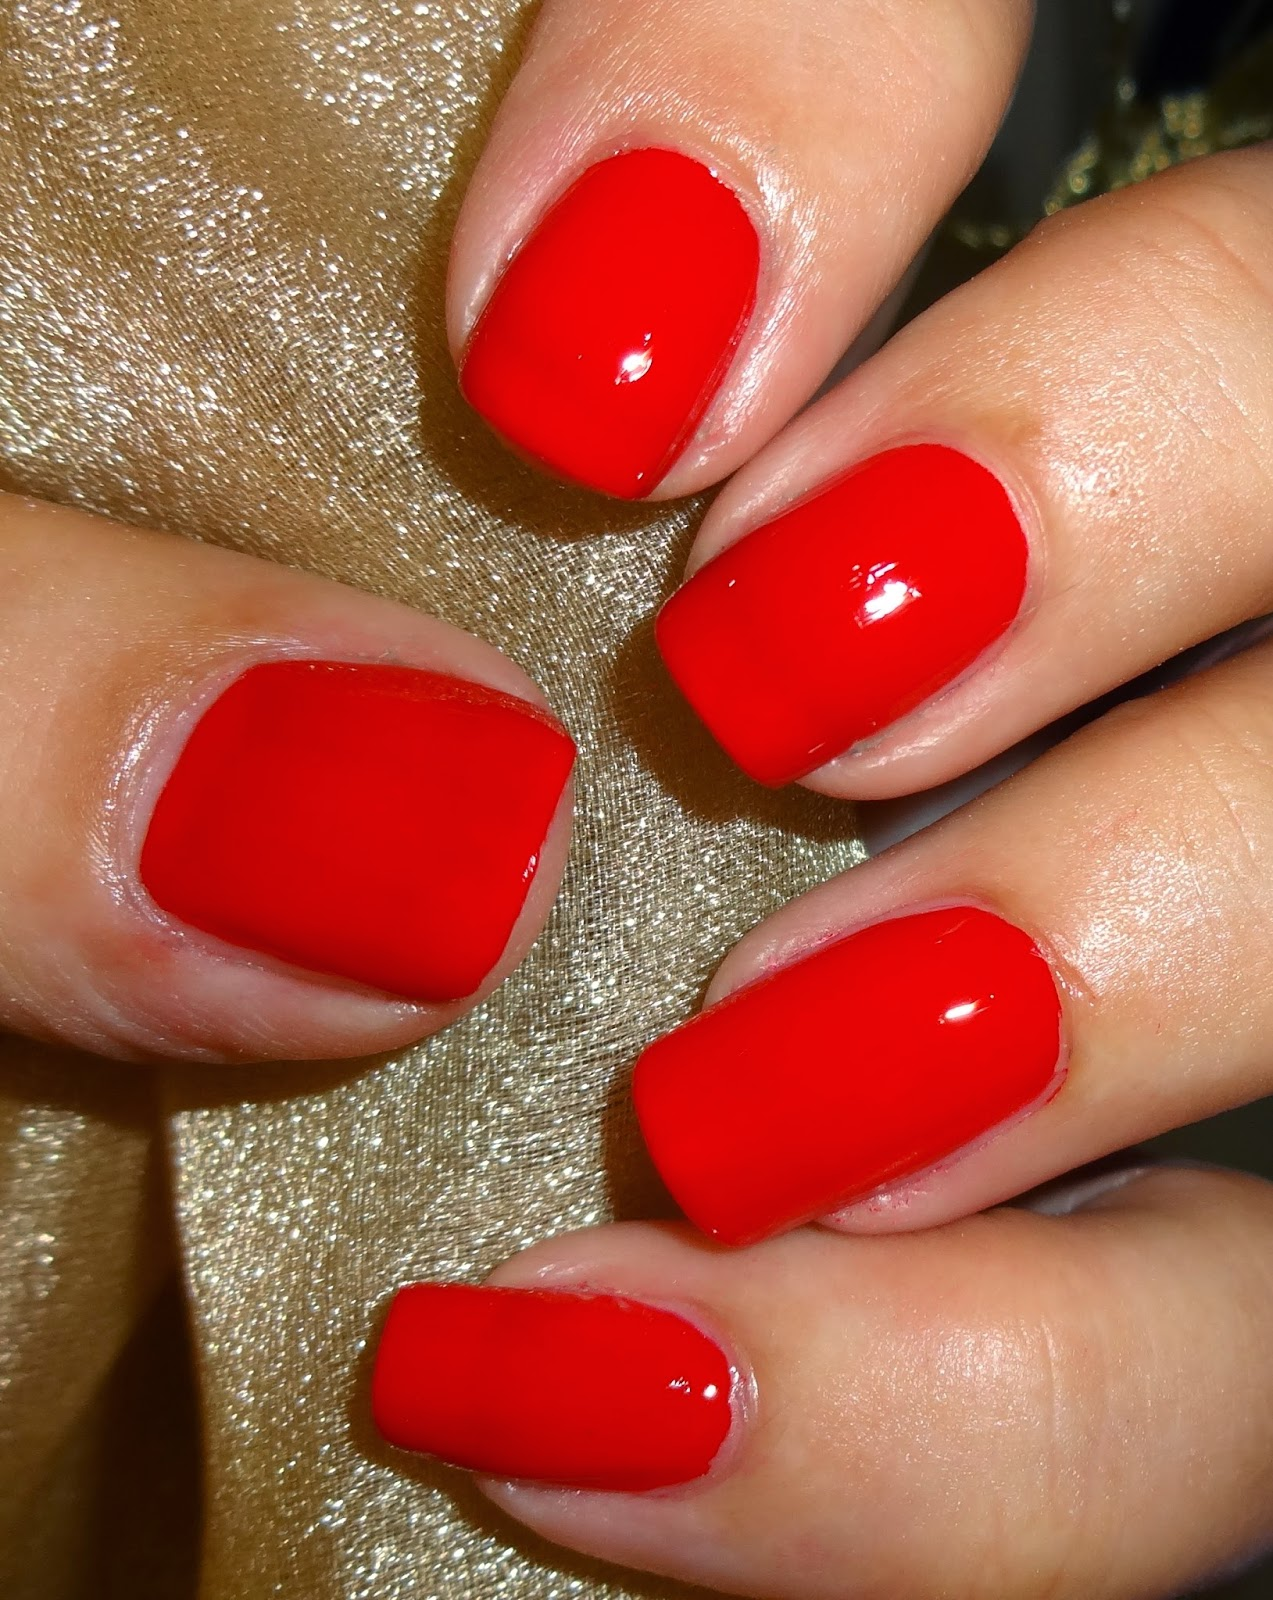 The Beuaty Uk Gel Fx Nail Polishes Are 3 49 Available At Beauty Super Internacionale Select Also Offer International Shipping